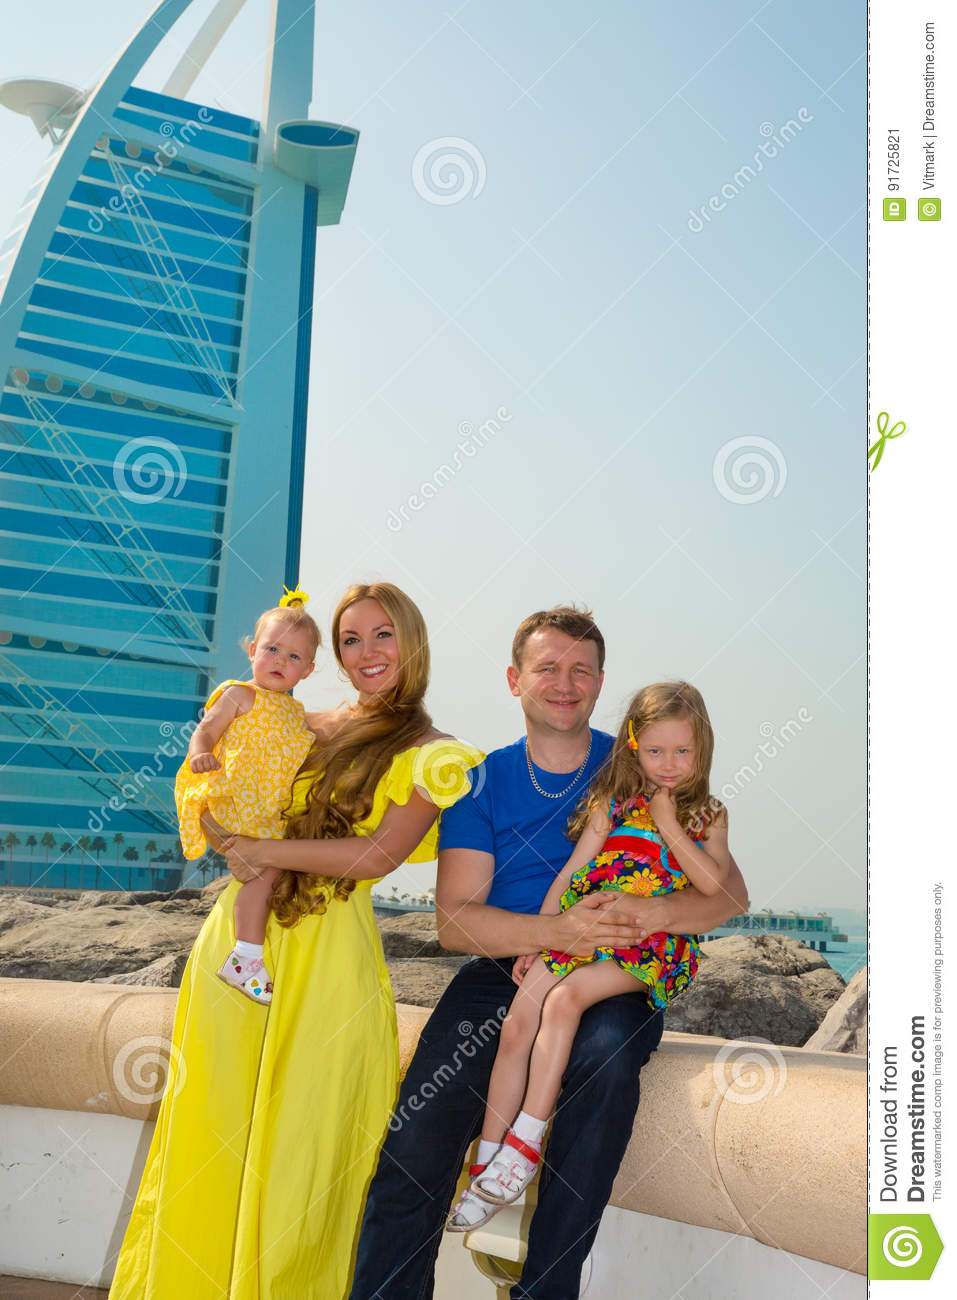 Happy family of father, mother and two children in outdoor on a summer day. Portrait parents and kids on nature.